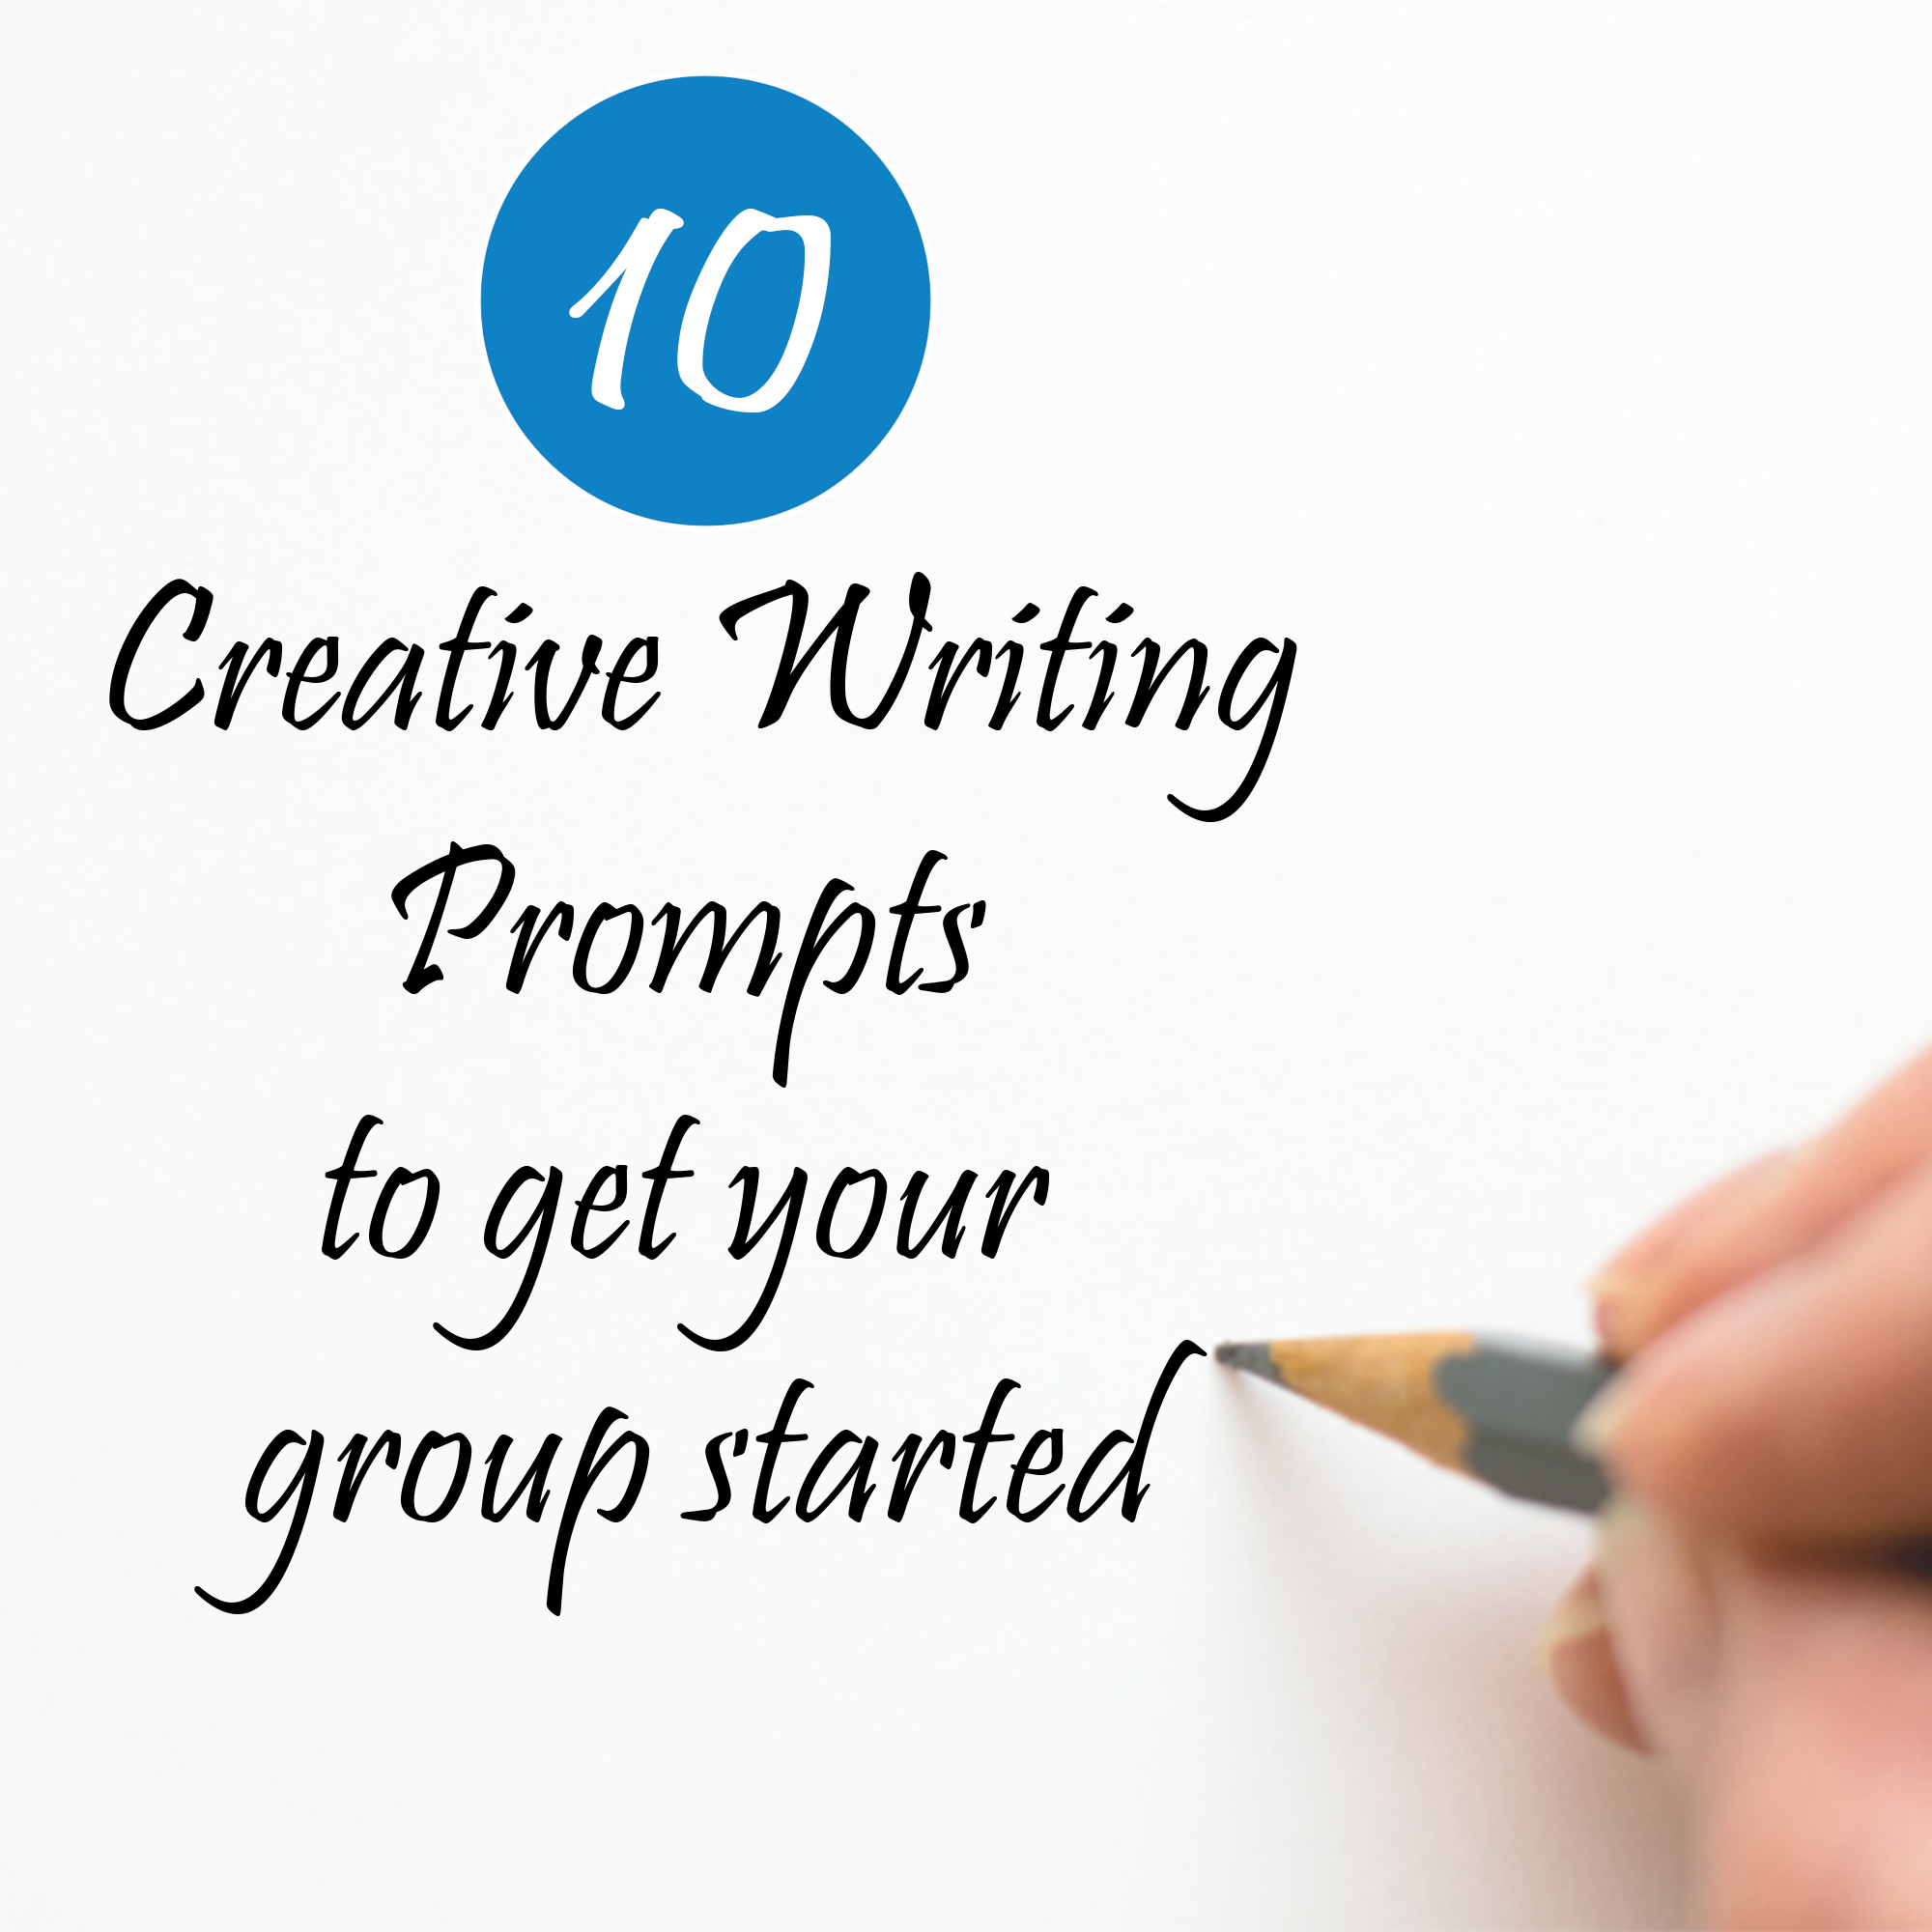 10 Creative Writing Prompts to Get Your Group Started